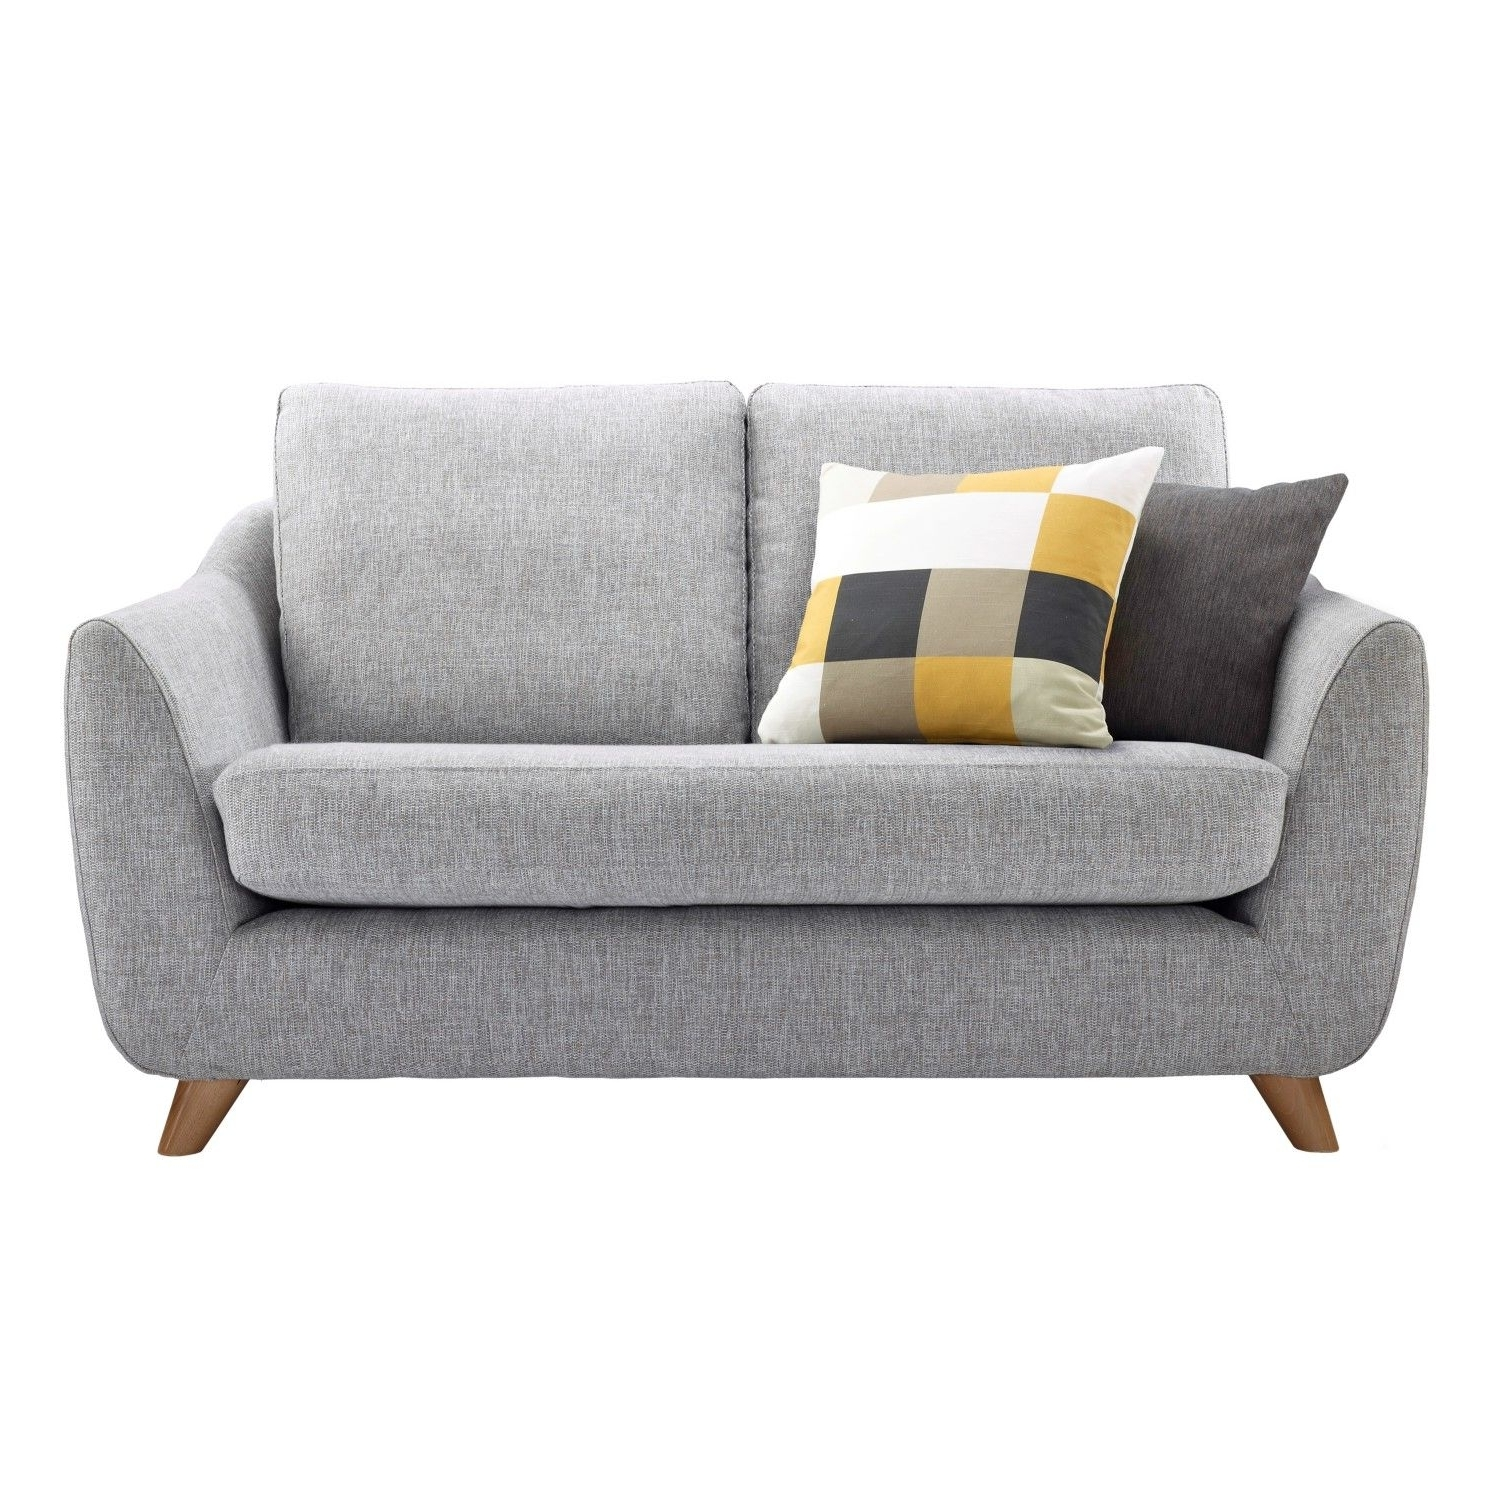 Loveseats For Small Spaces (View 2 of 15)